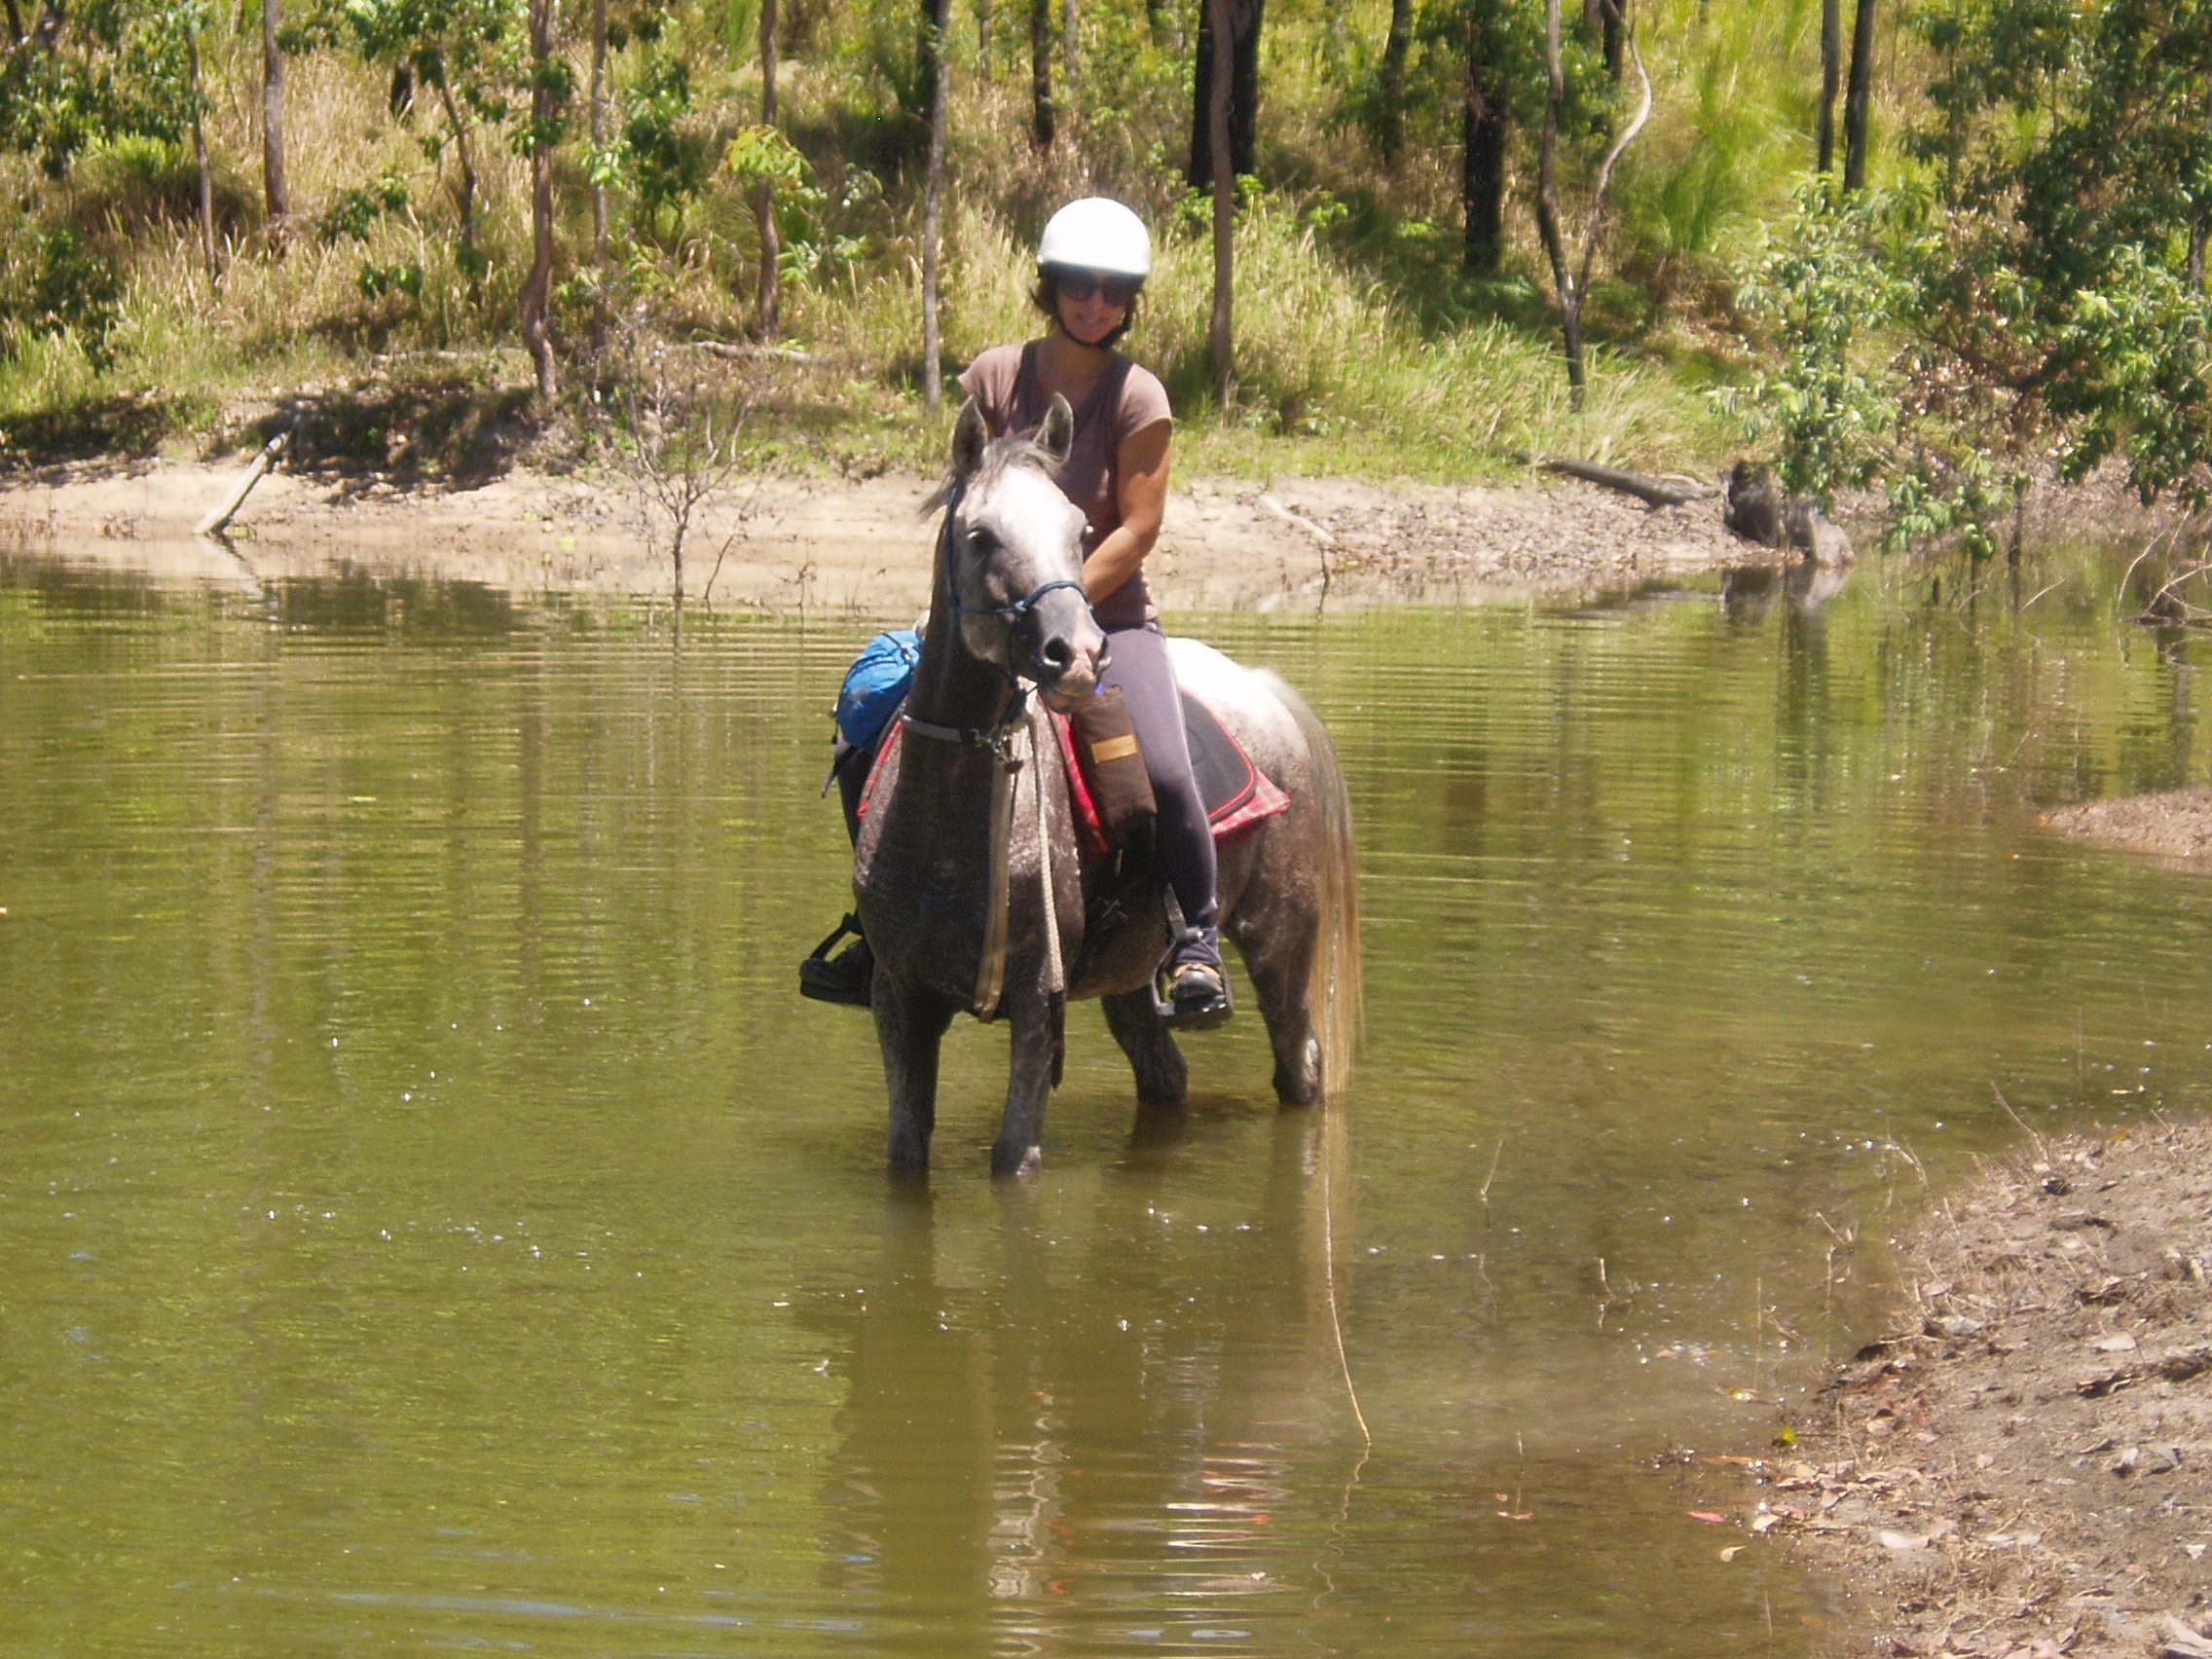 Lian Meaney and her horse Beau cooling off after a hot ride at Teemburra Dam.